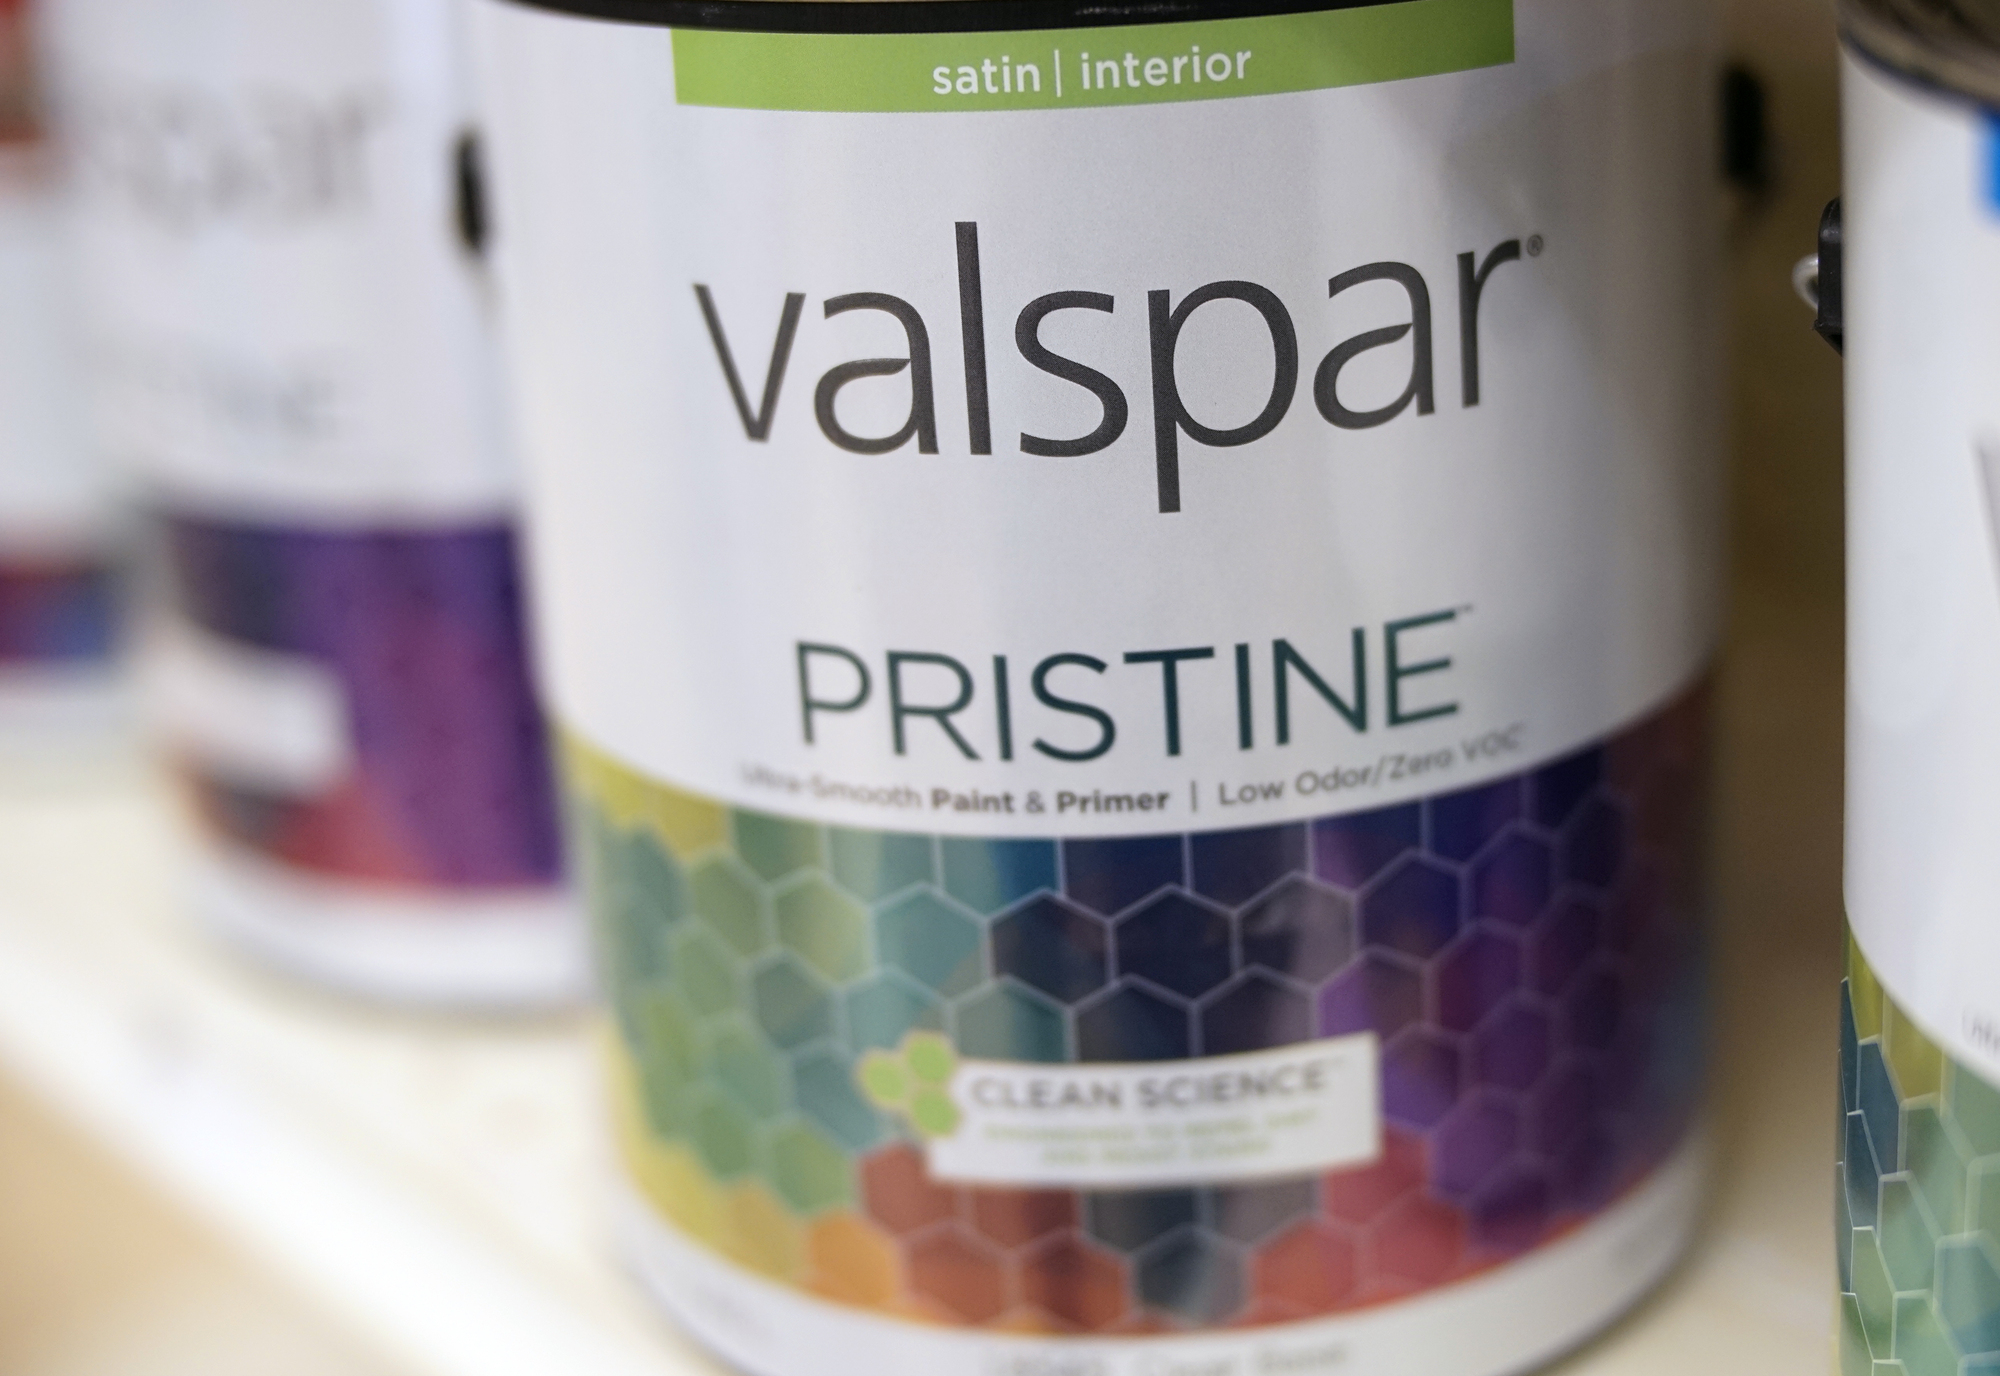 Valspar Spray Paint Review | Valspar Paint | Valspar Metallic Spray Paint